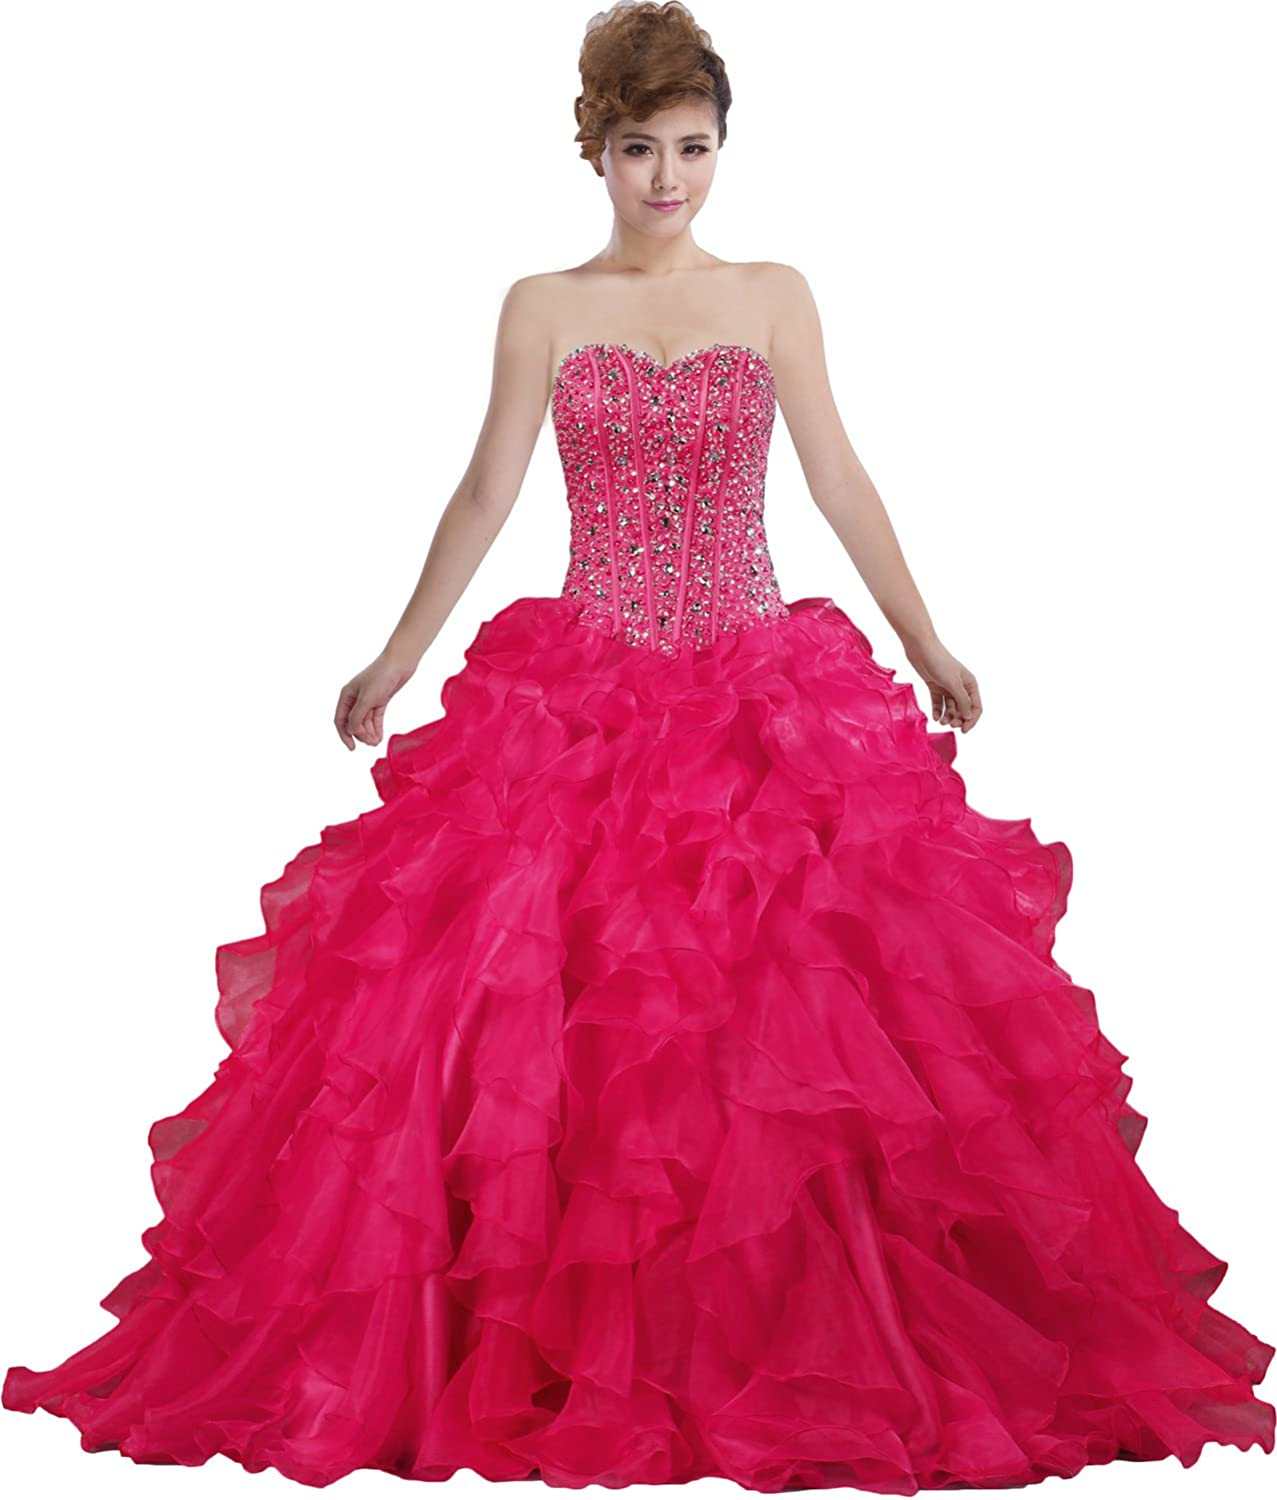 ANTS Women's Sweetheart Ball Gown Prom Dresses Formal Evening Gowns